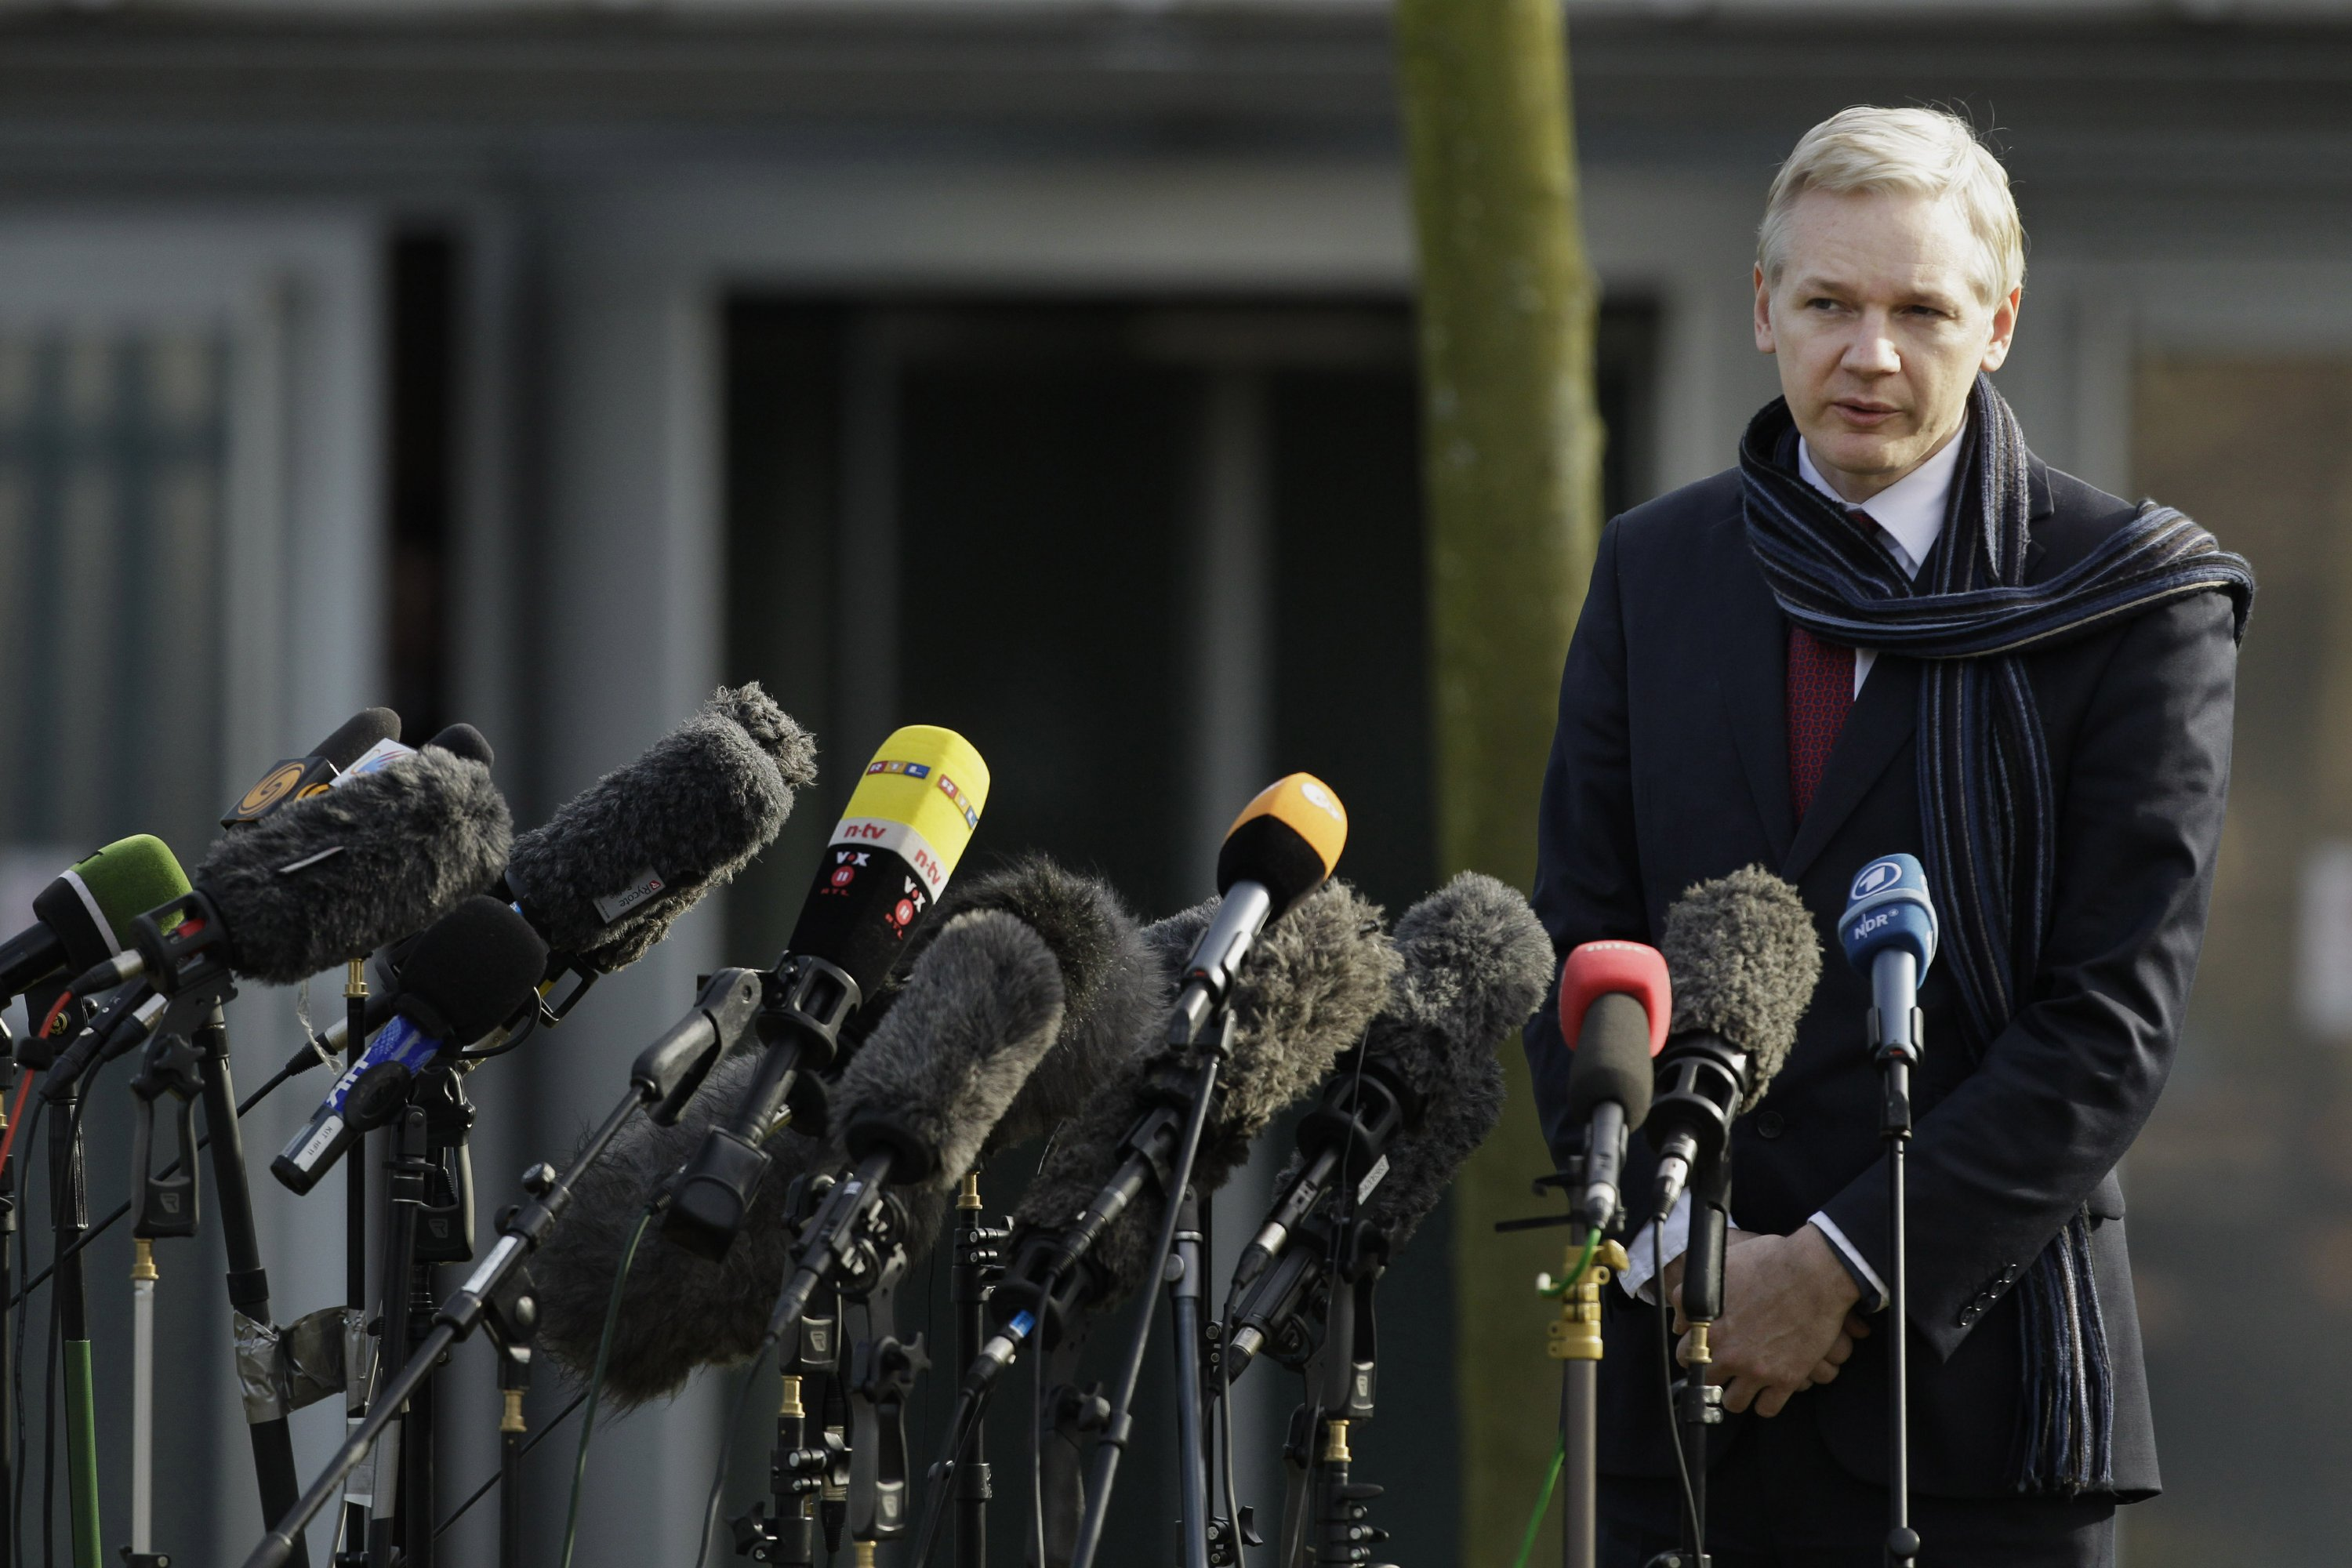 Charging Assange reflects dramatic shift in US approach